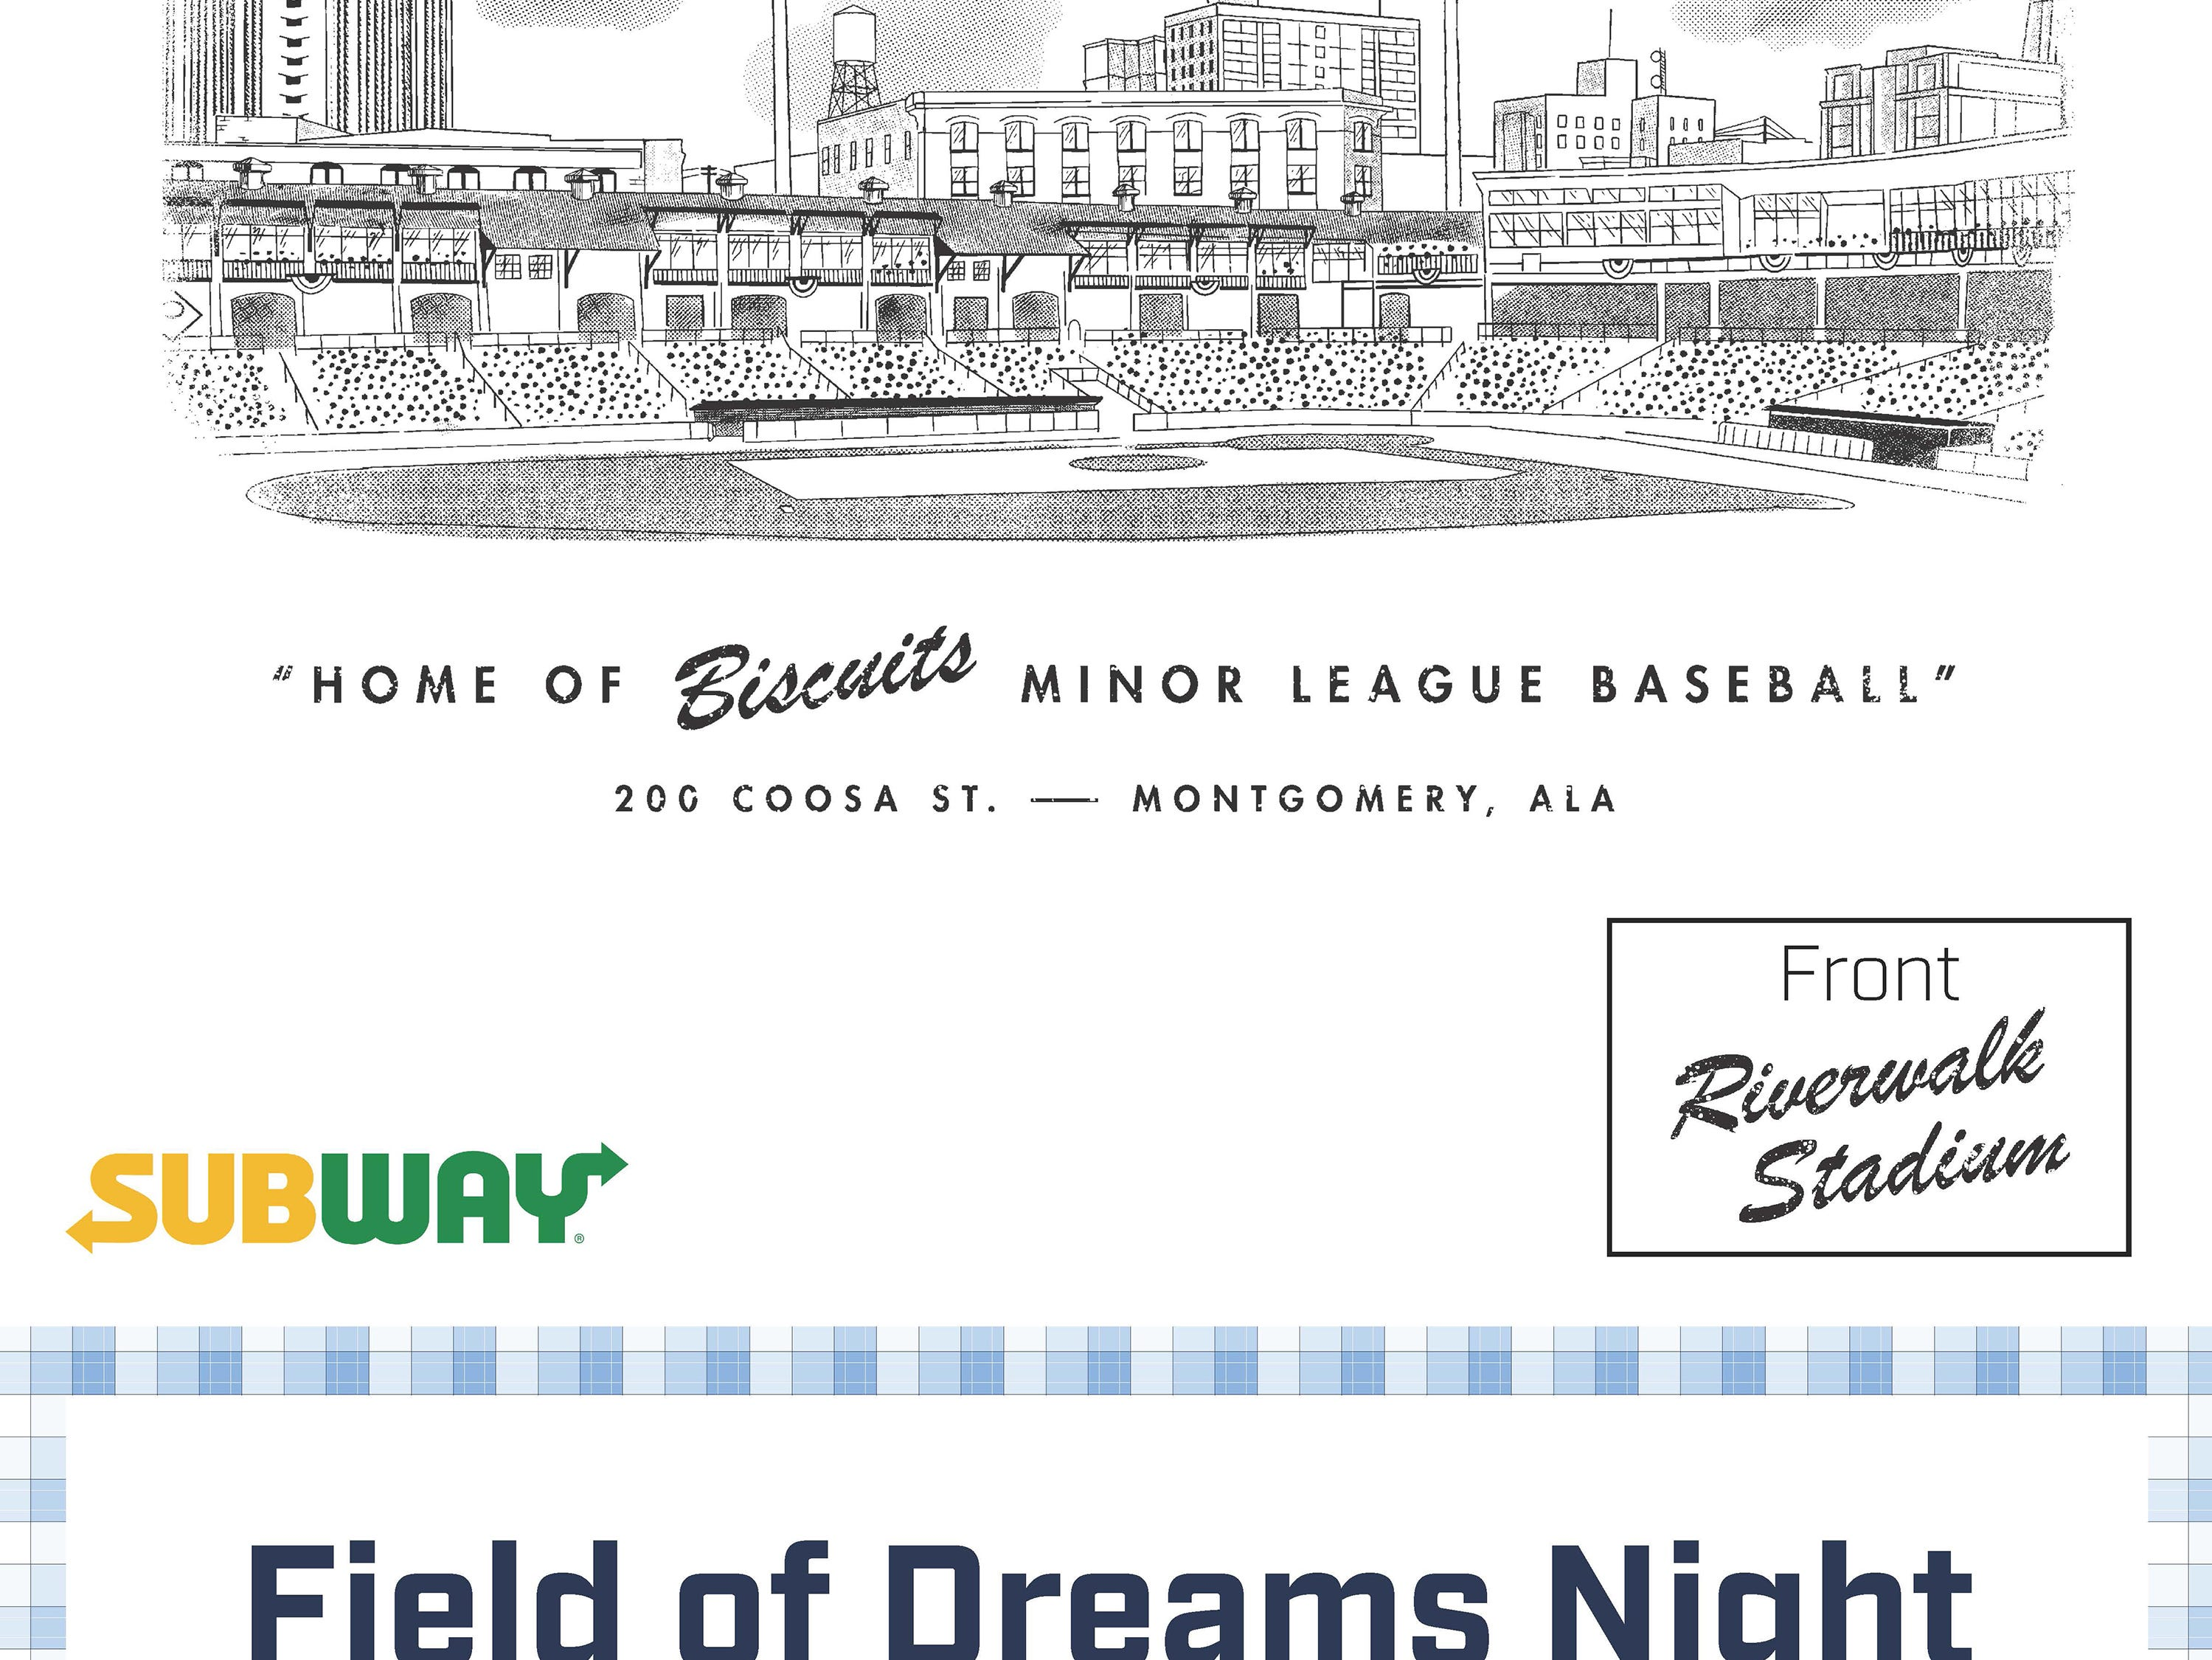 Montgomery Biscuits free t-shirt giveaway design for Field of Dreams Night on Thursday, April 25, 2019.